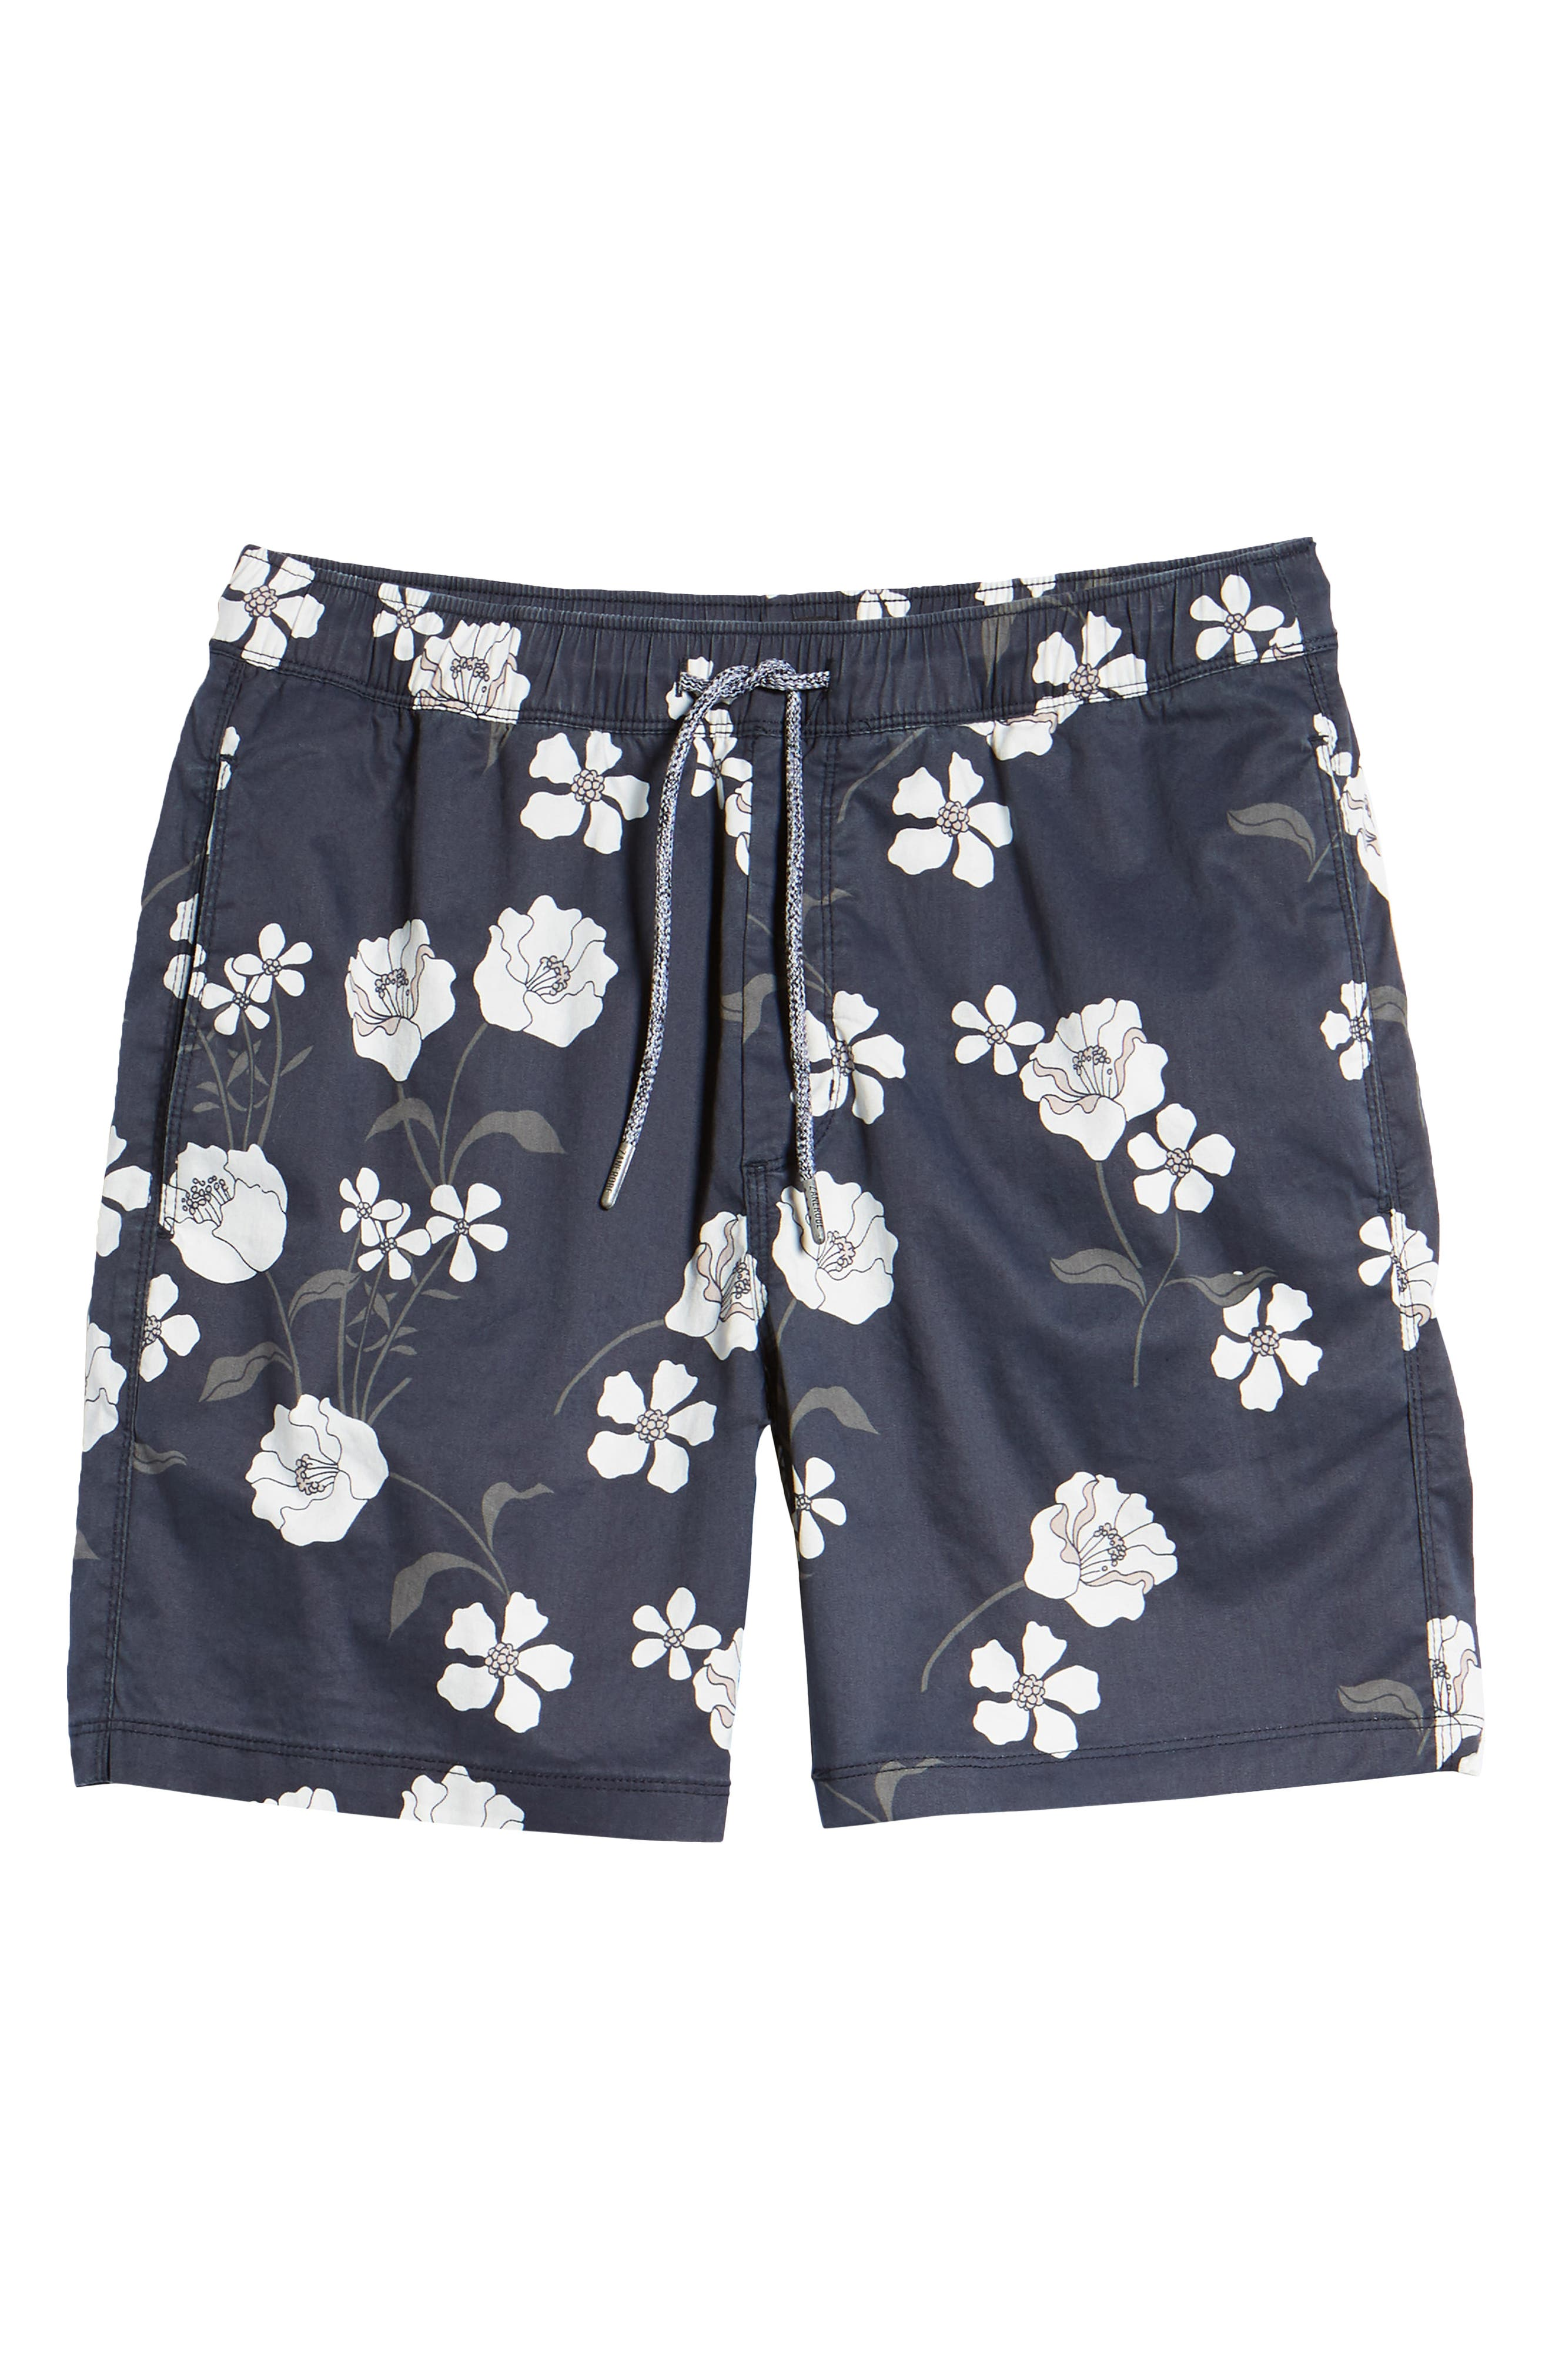 Laguna Board Shorts,                             Alternate thumbnail 6, color,                             DUKE BLUE